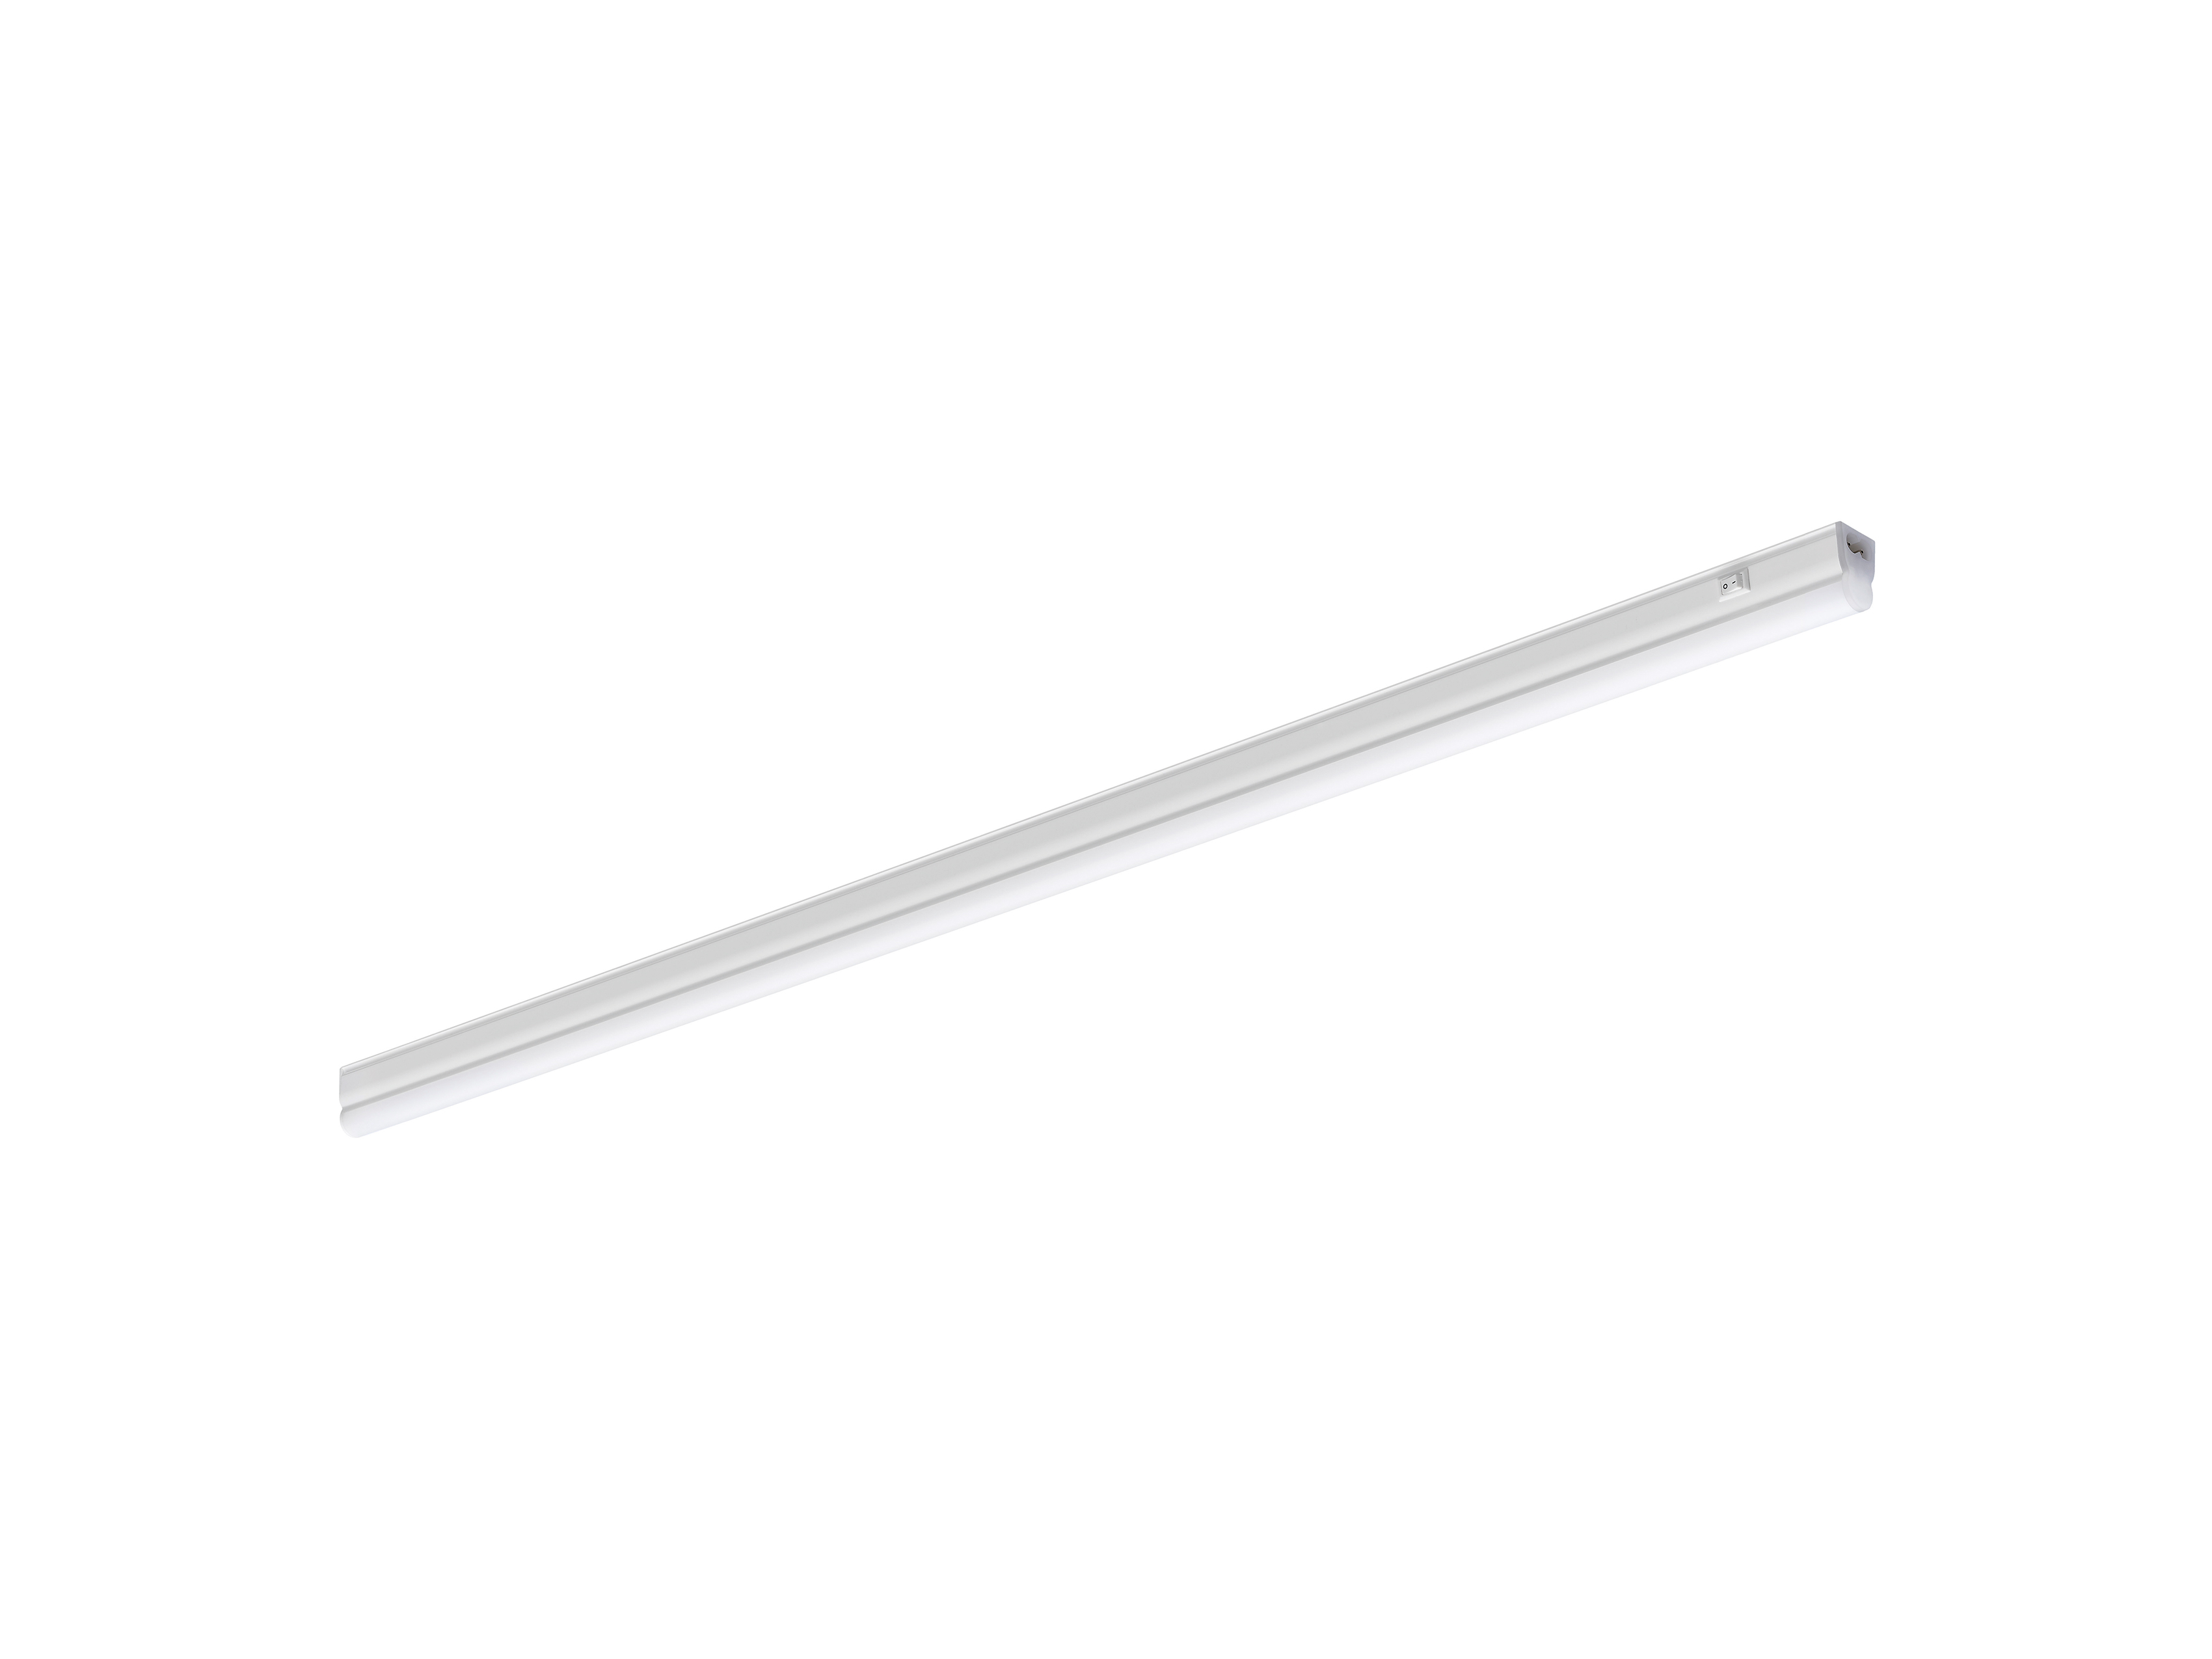 Sylvania PIPE LED under cabinet light 7W cool white 600mm length Thumbnail 1